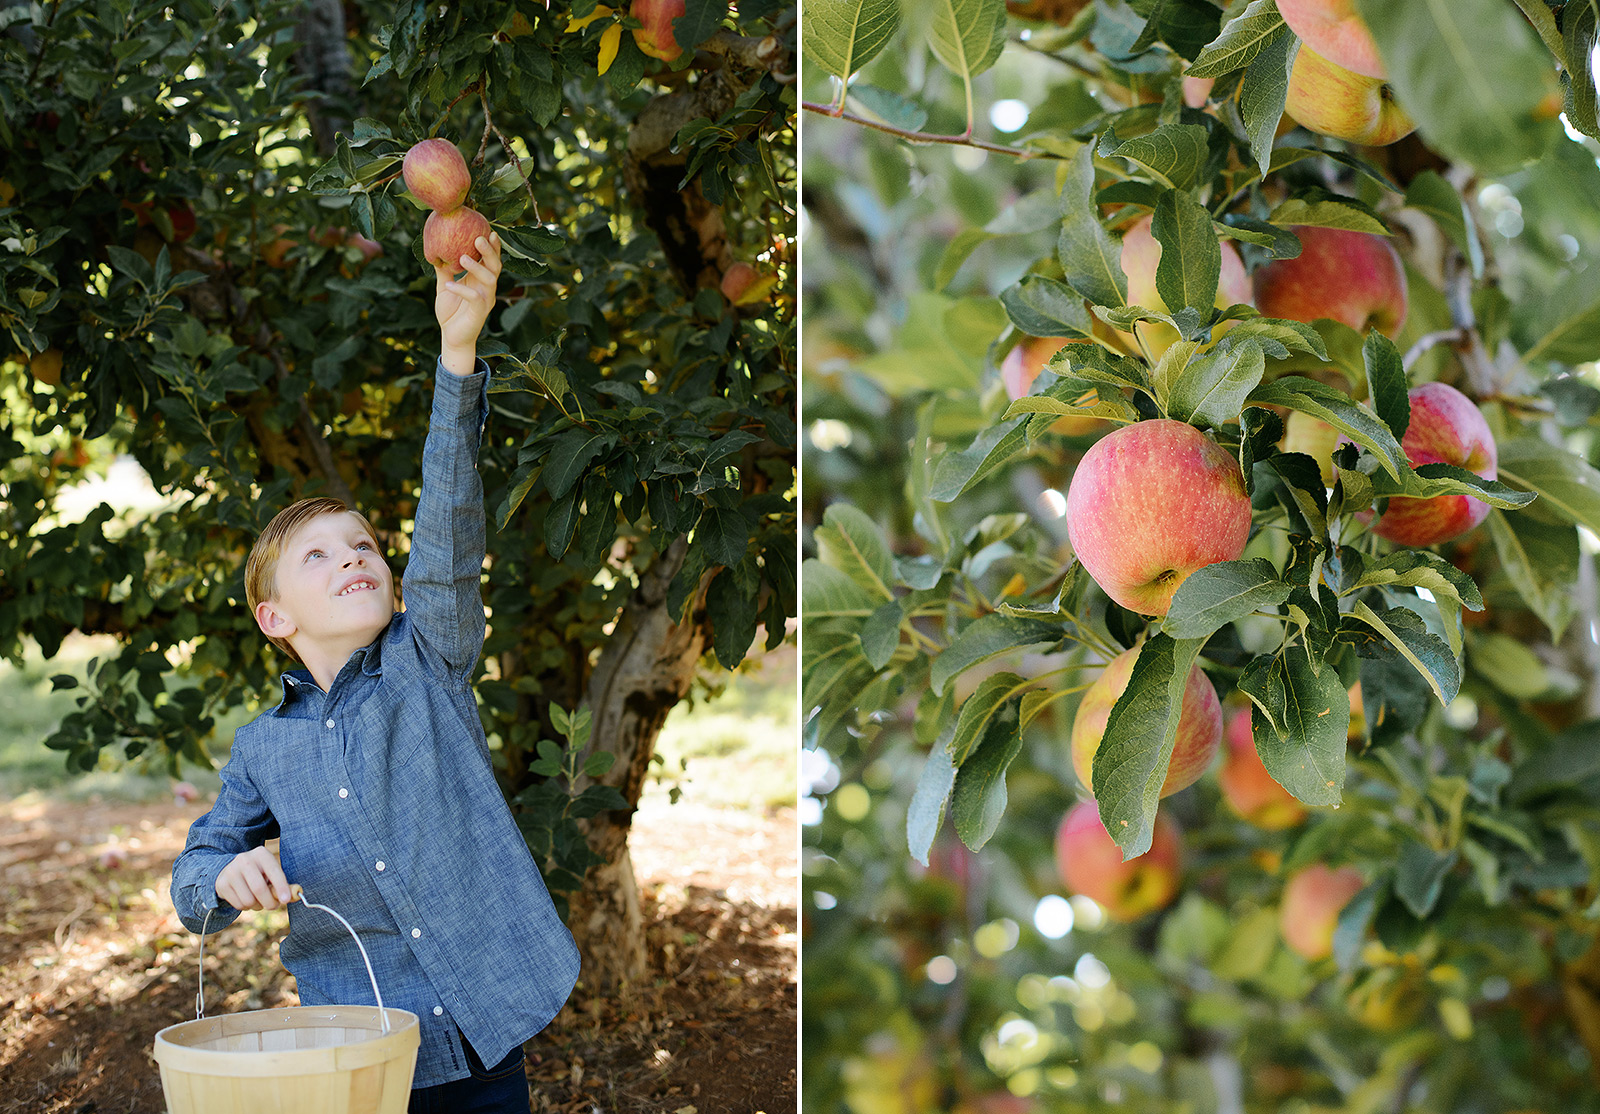 Boy in Chambray Shirt Picking Apples in Apple Hill